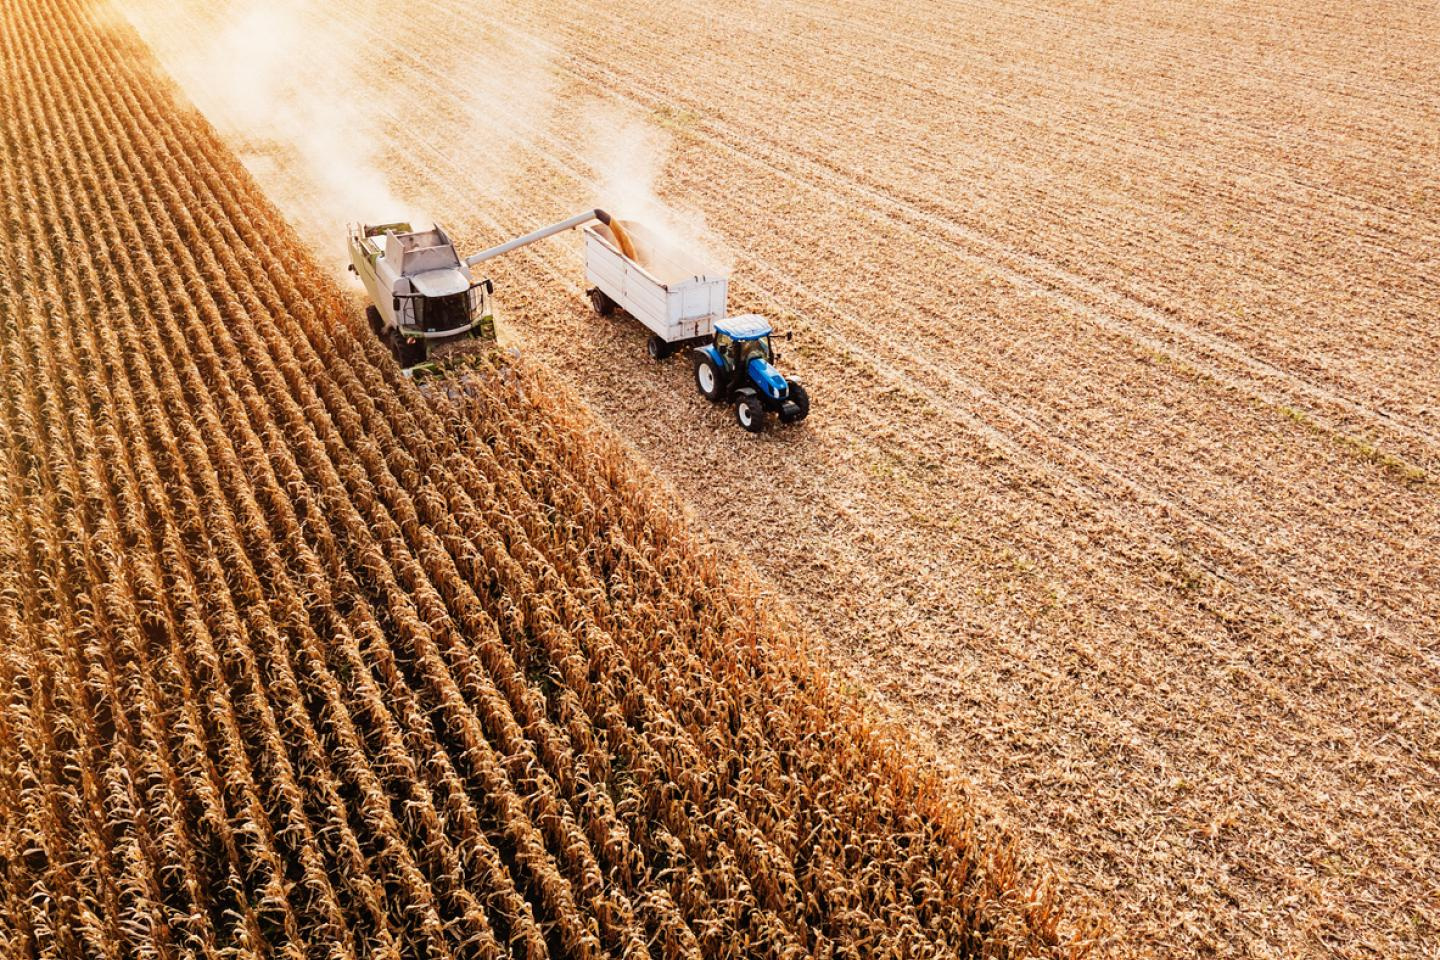 Corn field being harvested